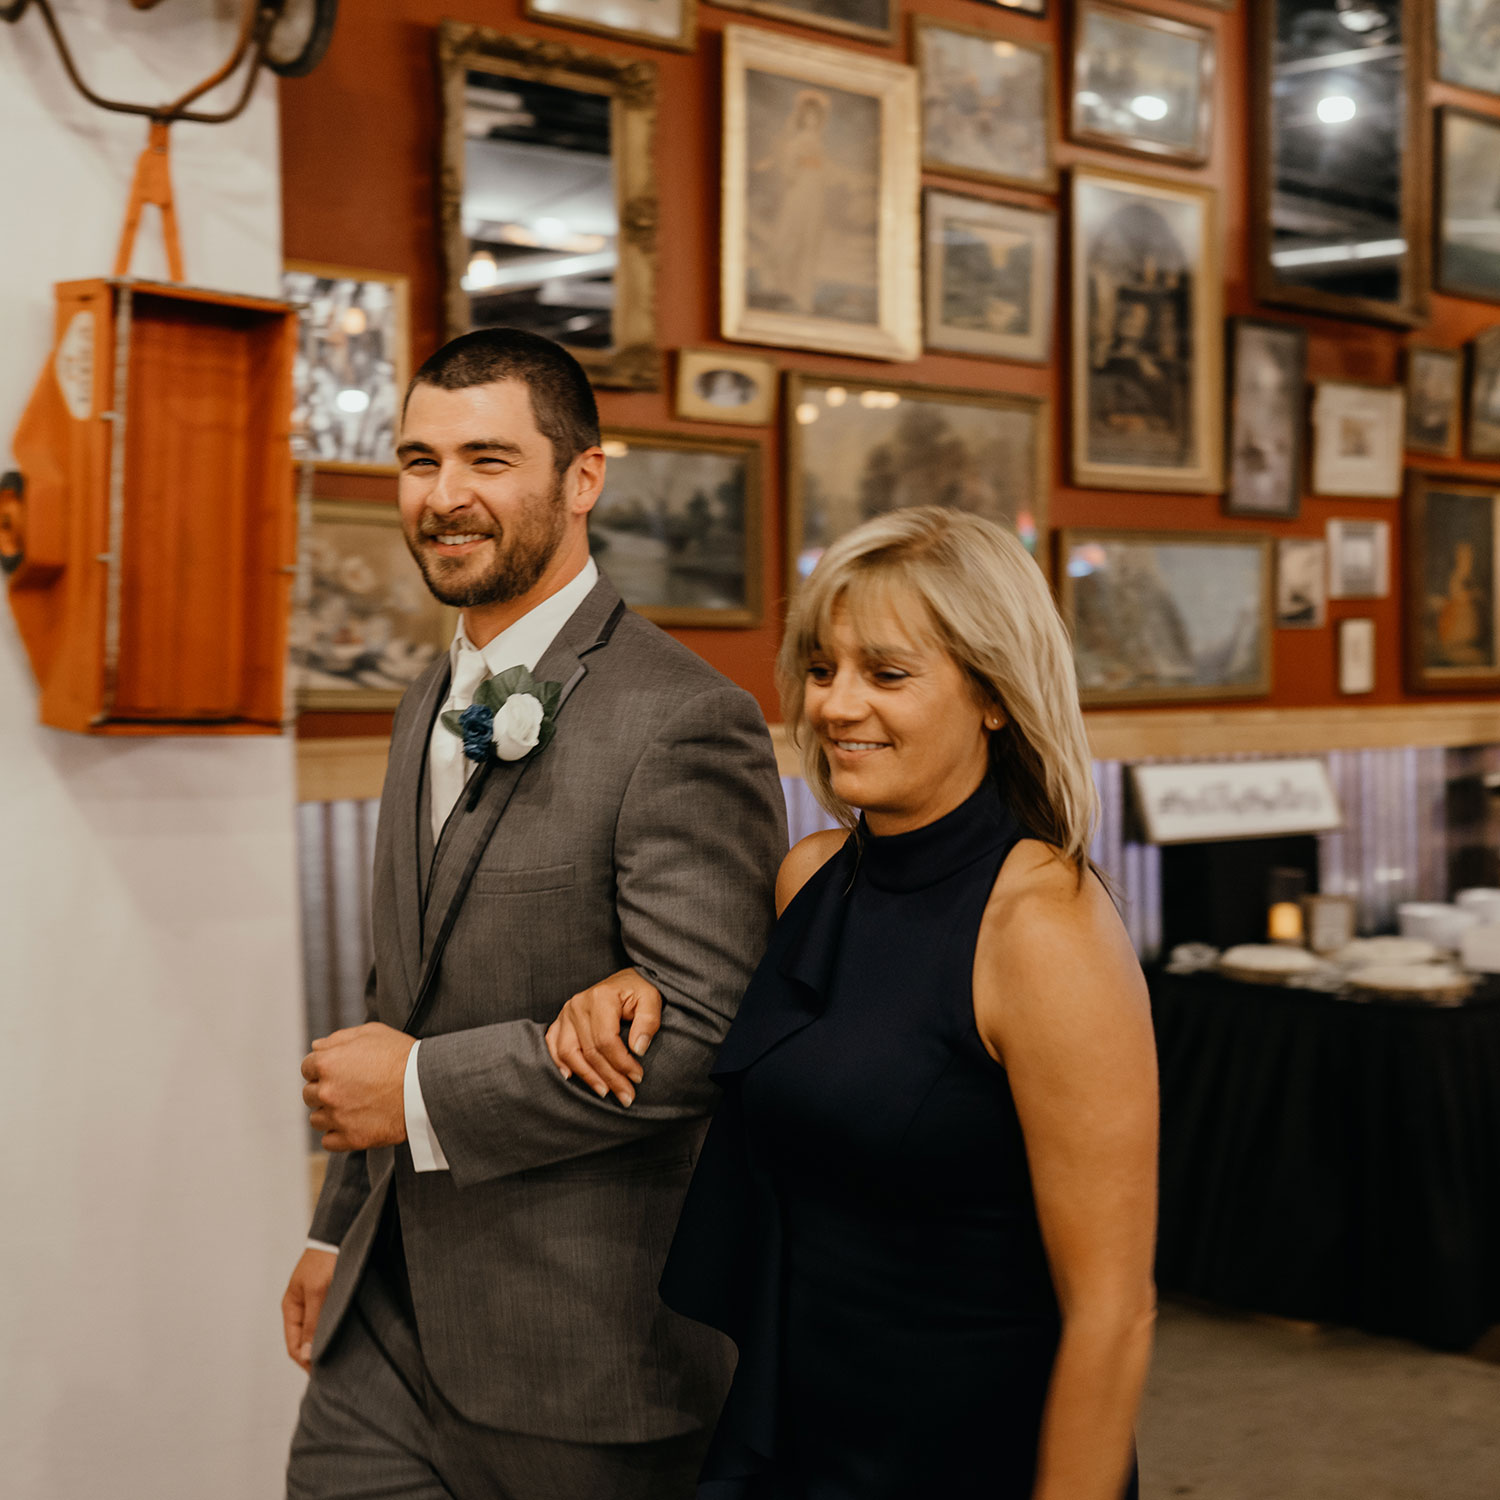 groom-walking-mother-of-bride-down-aisle-decades-event-center-building-desmoines-iowa-raelyn-ramey-photography..jpg